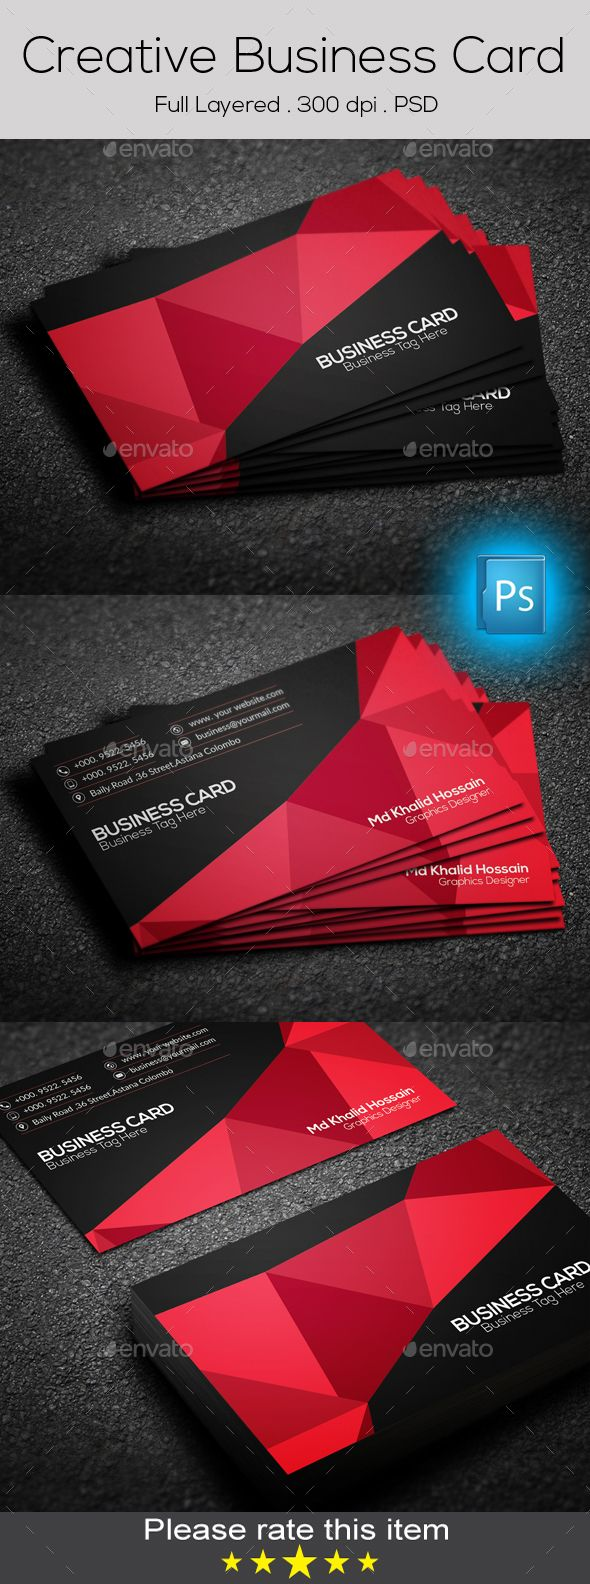 Photoshop business card color mode image collections card design creative business card by blackrose7 features cmyk color mode creative business card by blackrose7 features cmyk reheart Image collections